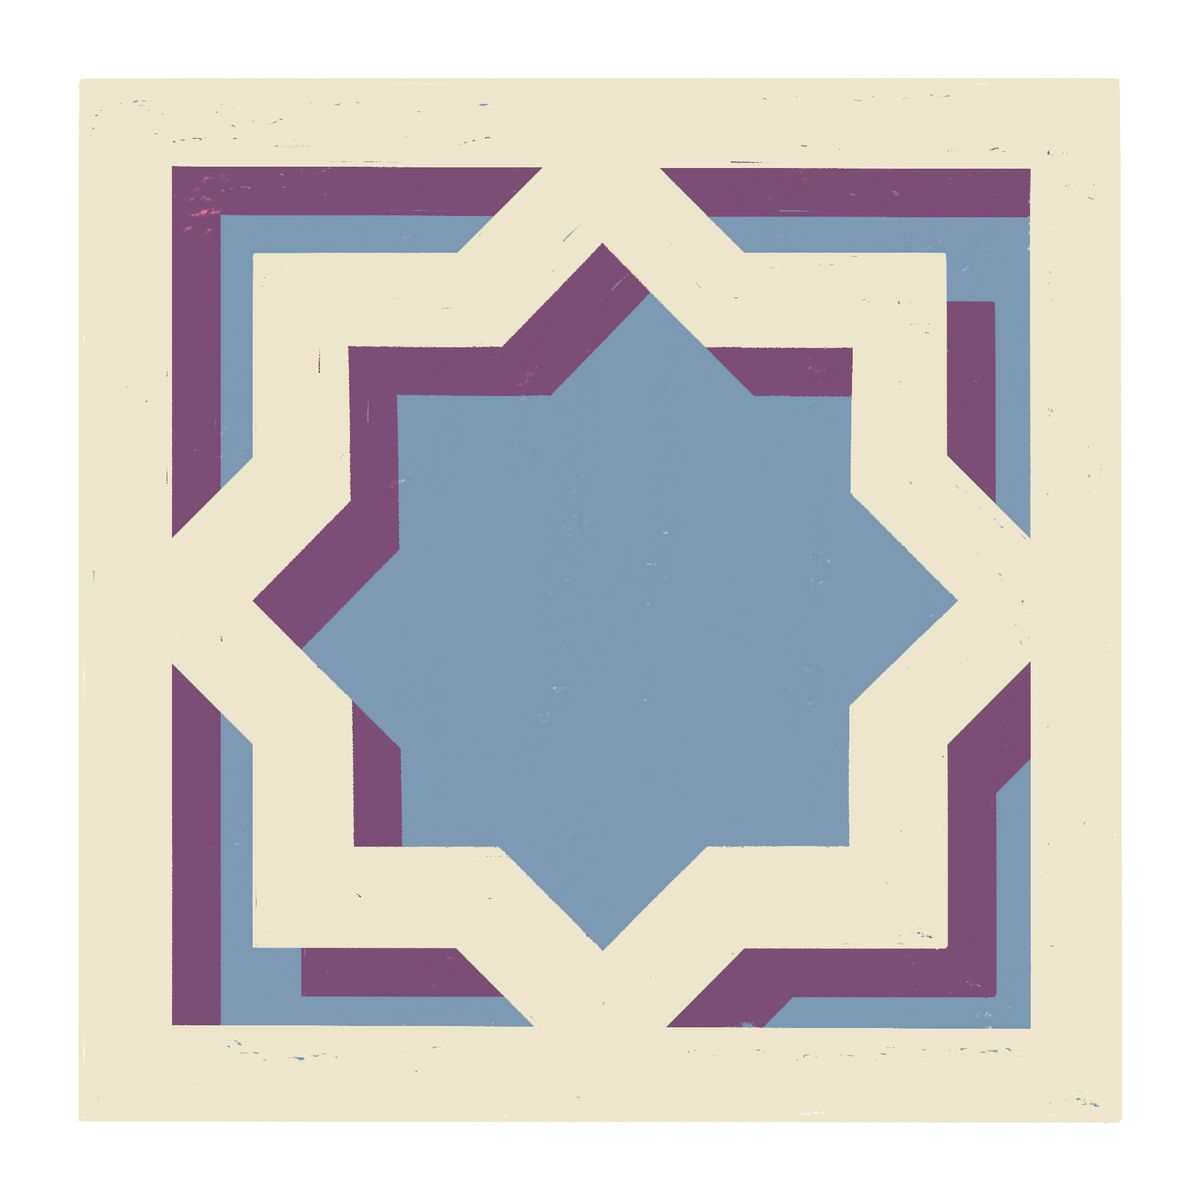 A close up of a hollow square tile, within the square there is a symmetric 8 point star meeting the square on it's inner sides. Illustration.